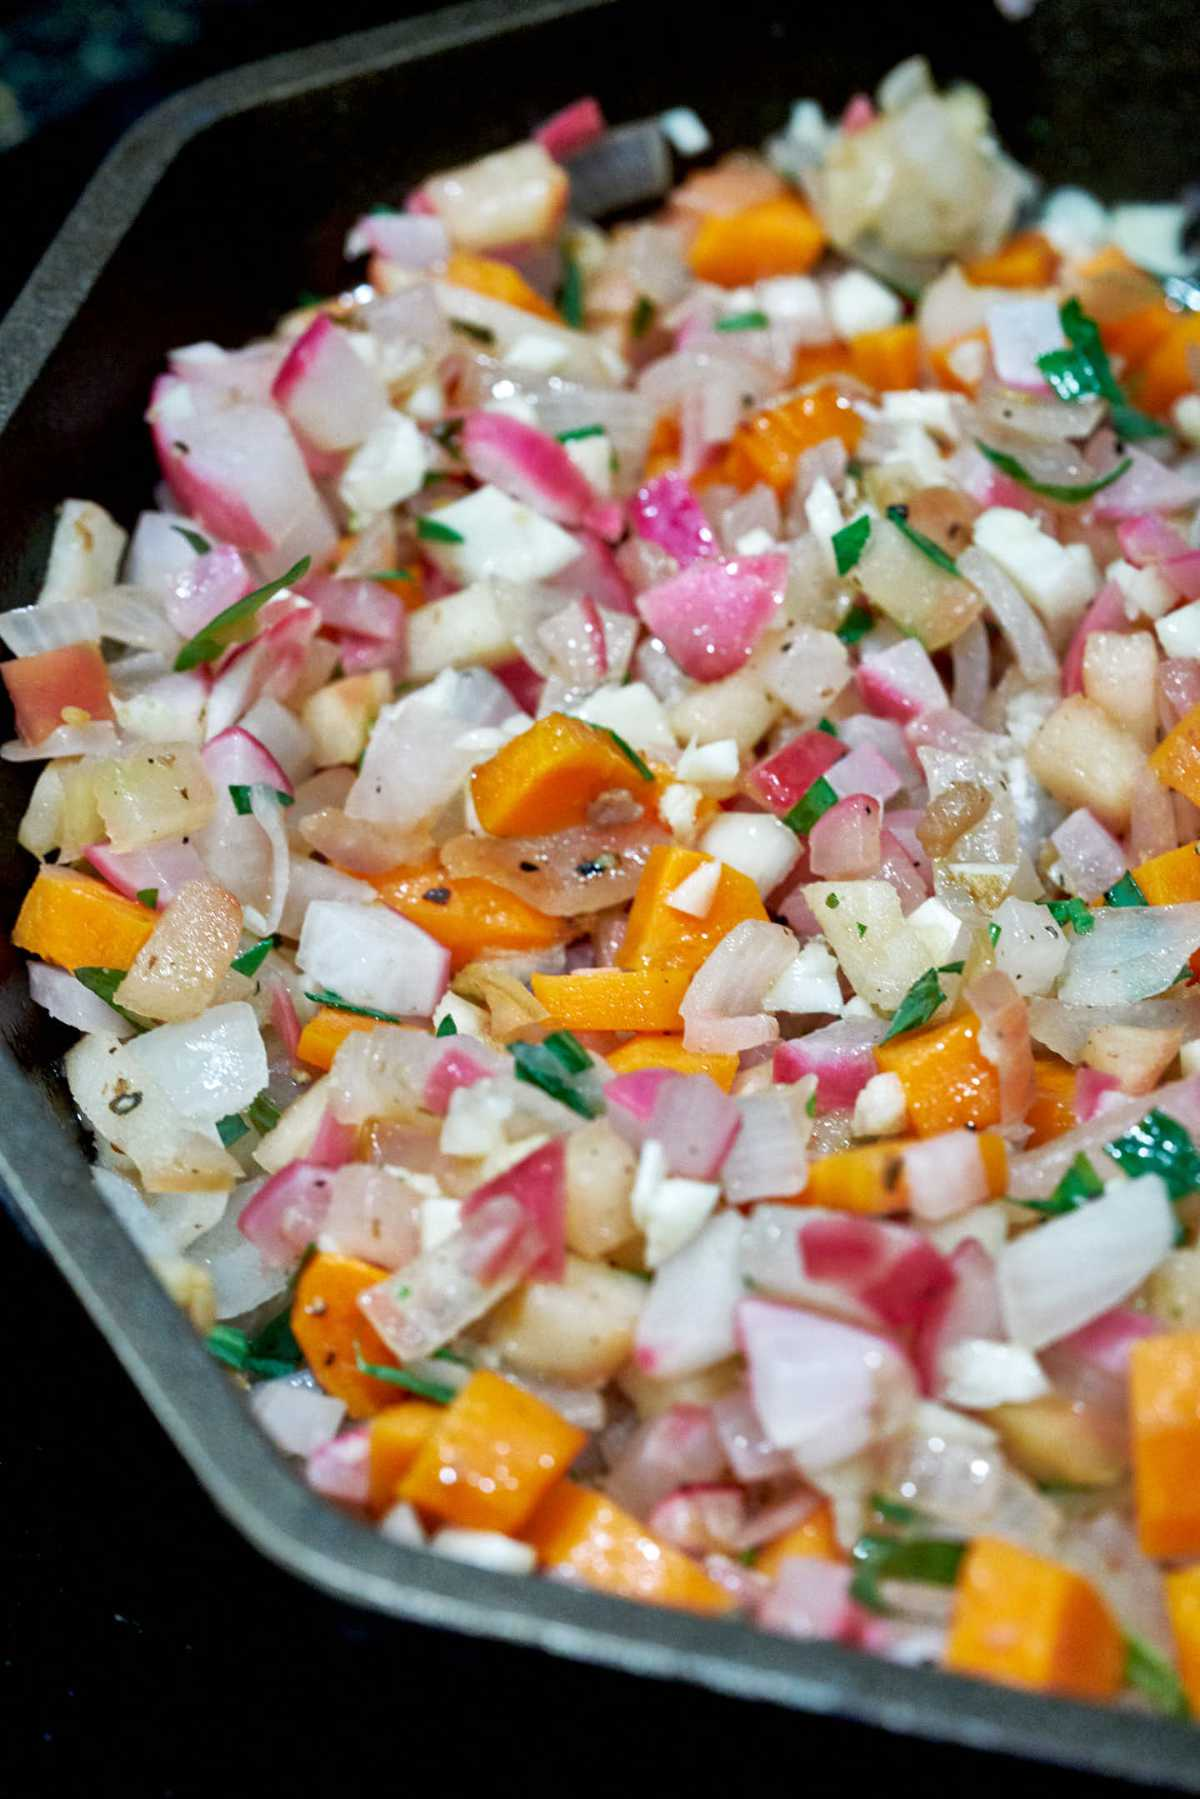 Pan with sauteed vegetables.